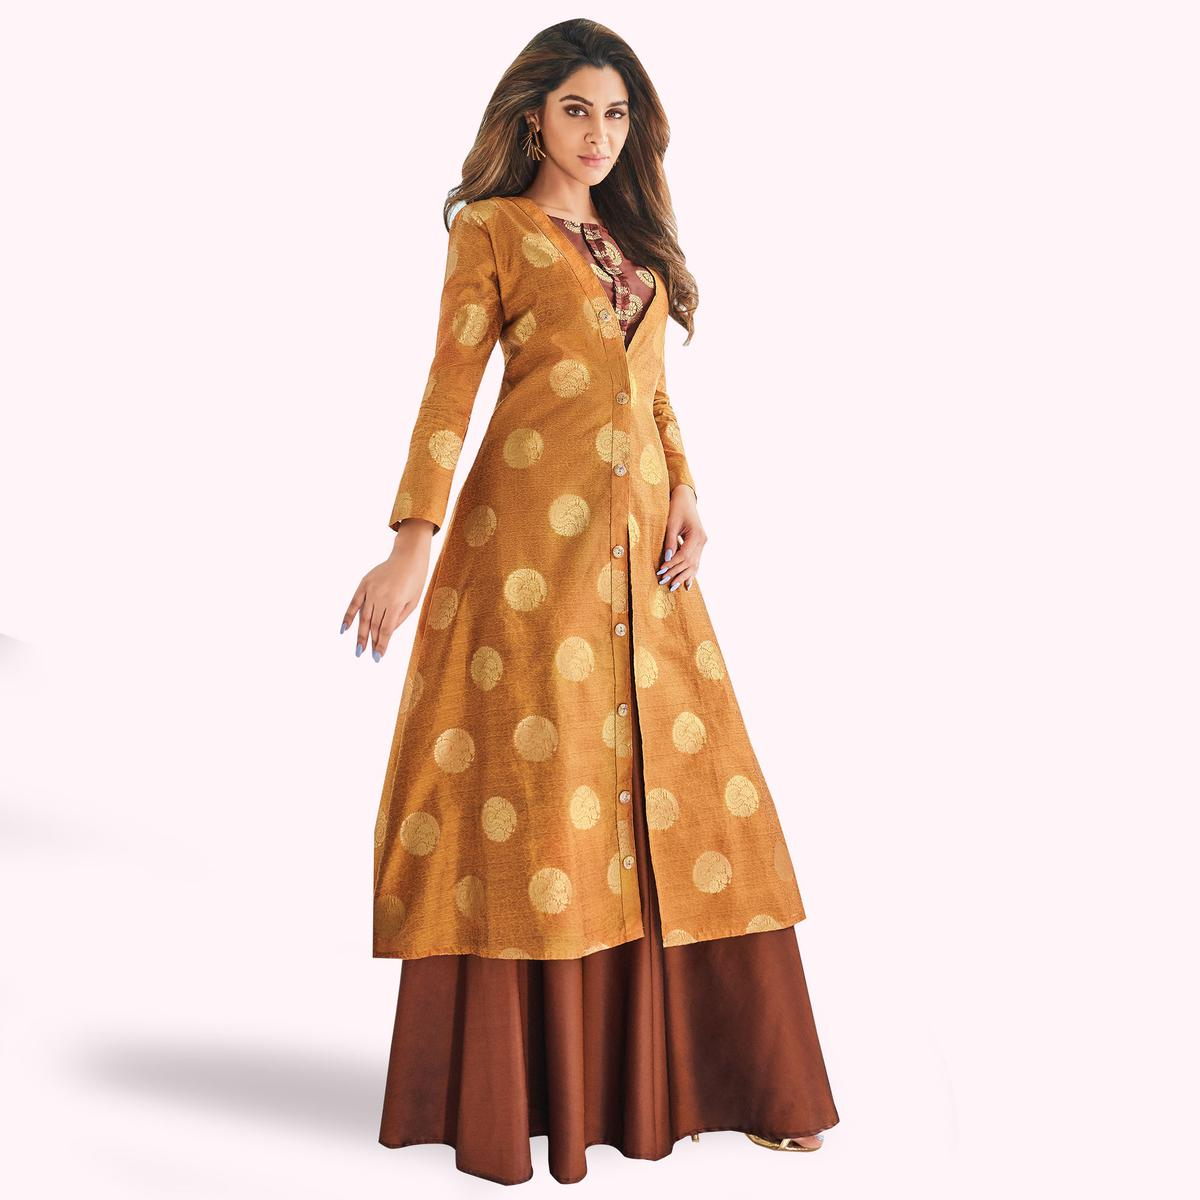 Stunning Mustard Yellow-Brown Colored Partywear Printed Raw Silk Lehenga With Koti